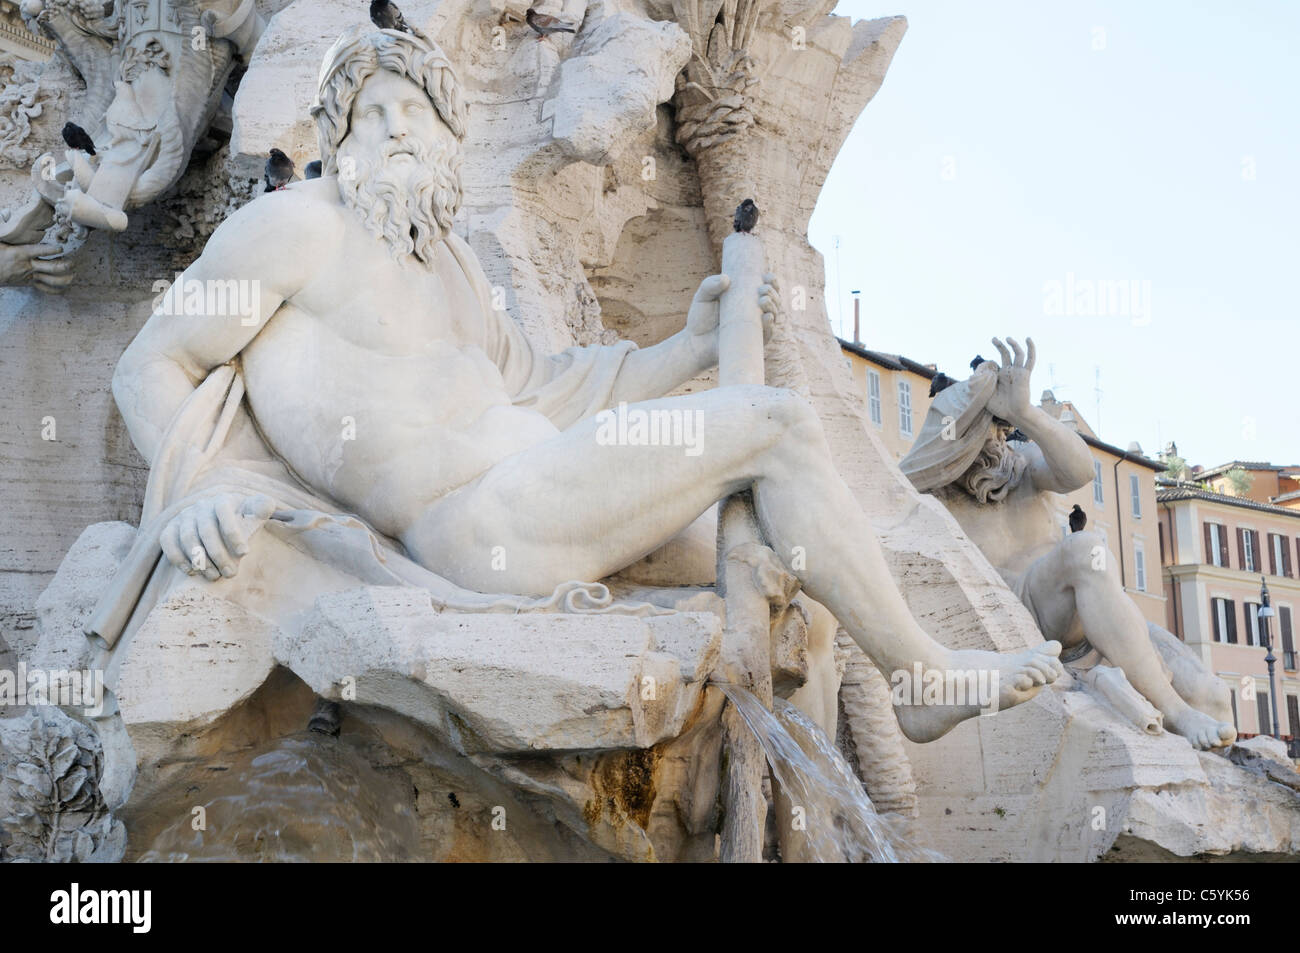 Fountain of the Four Rivers by Bernini,  Piazza Navona, Rome.  Detail of the river god Ganges - Stock Image